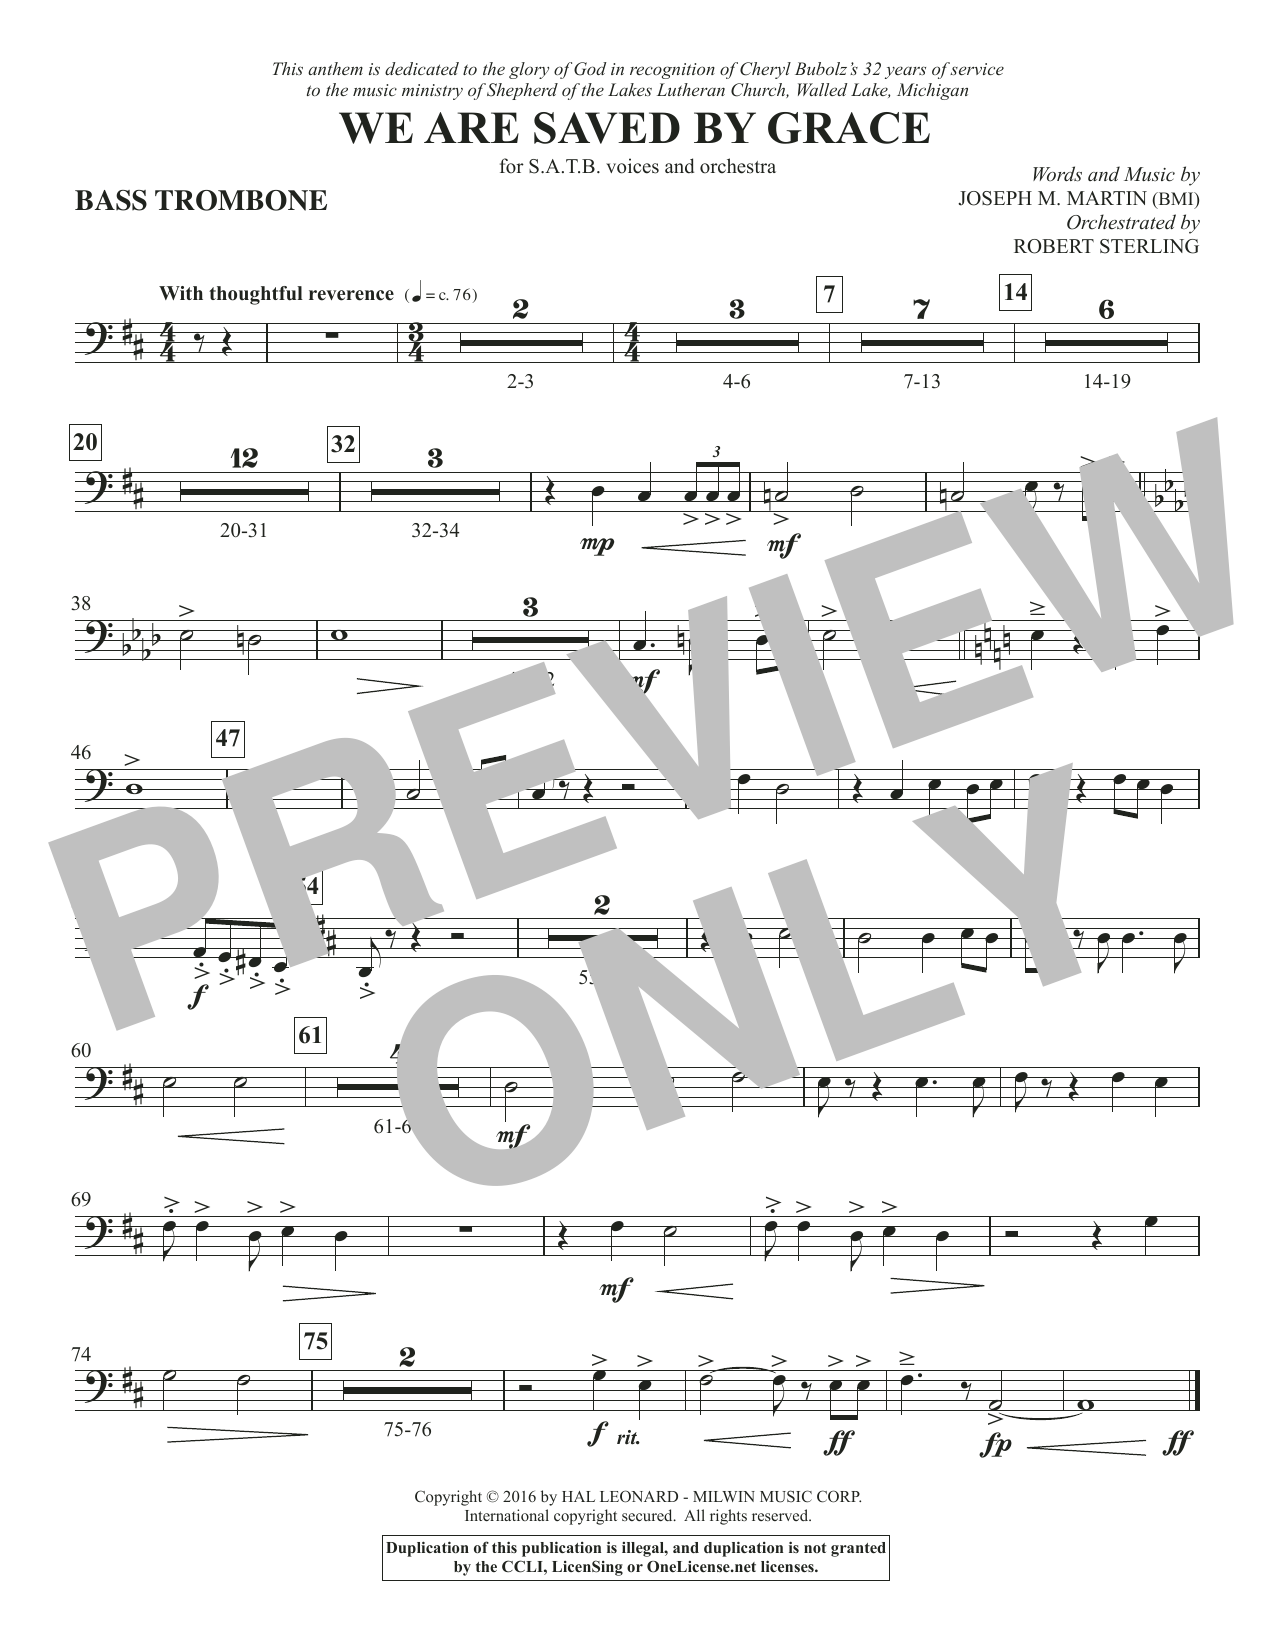 We Are Saved by Grace - Bass Trombone Sheet Music